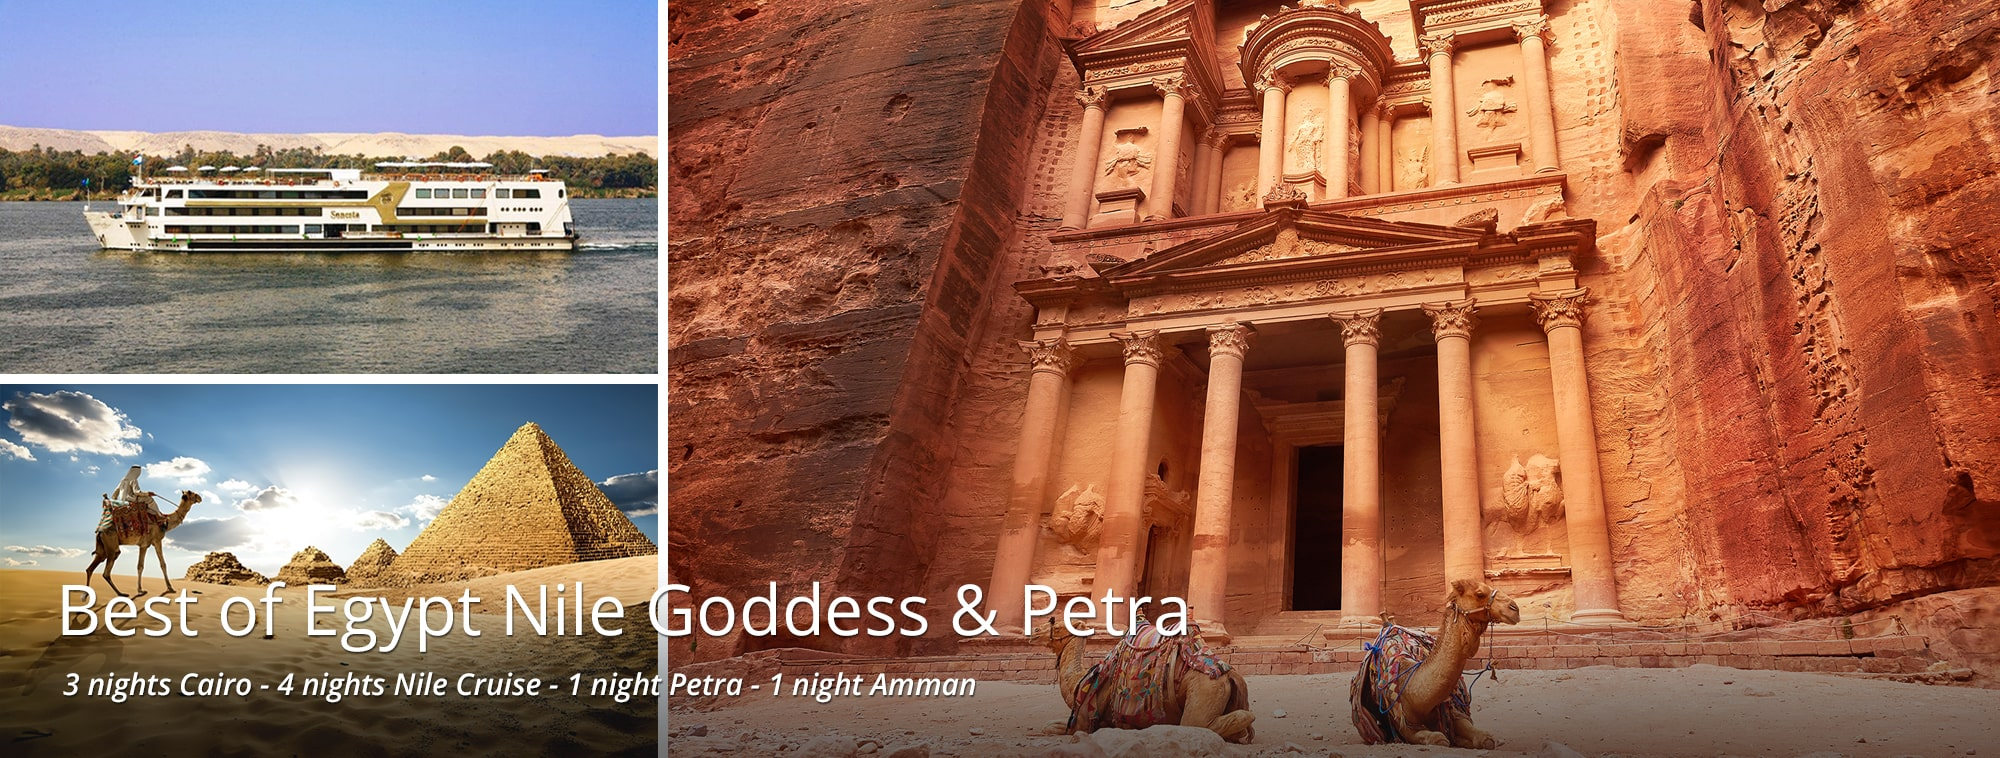 Best of Egypt Nile Goddess and Petra Tour